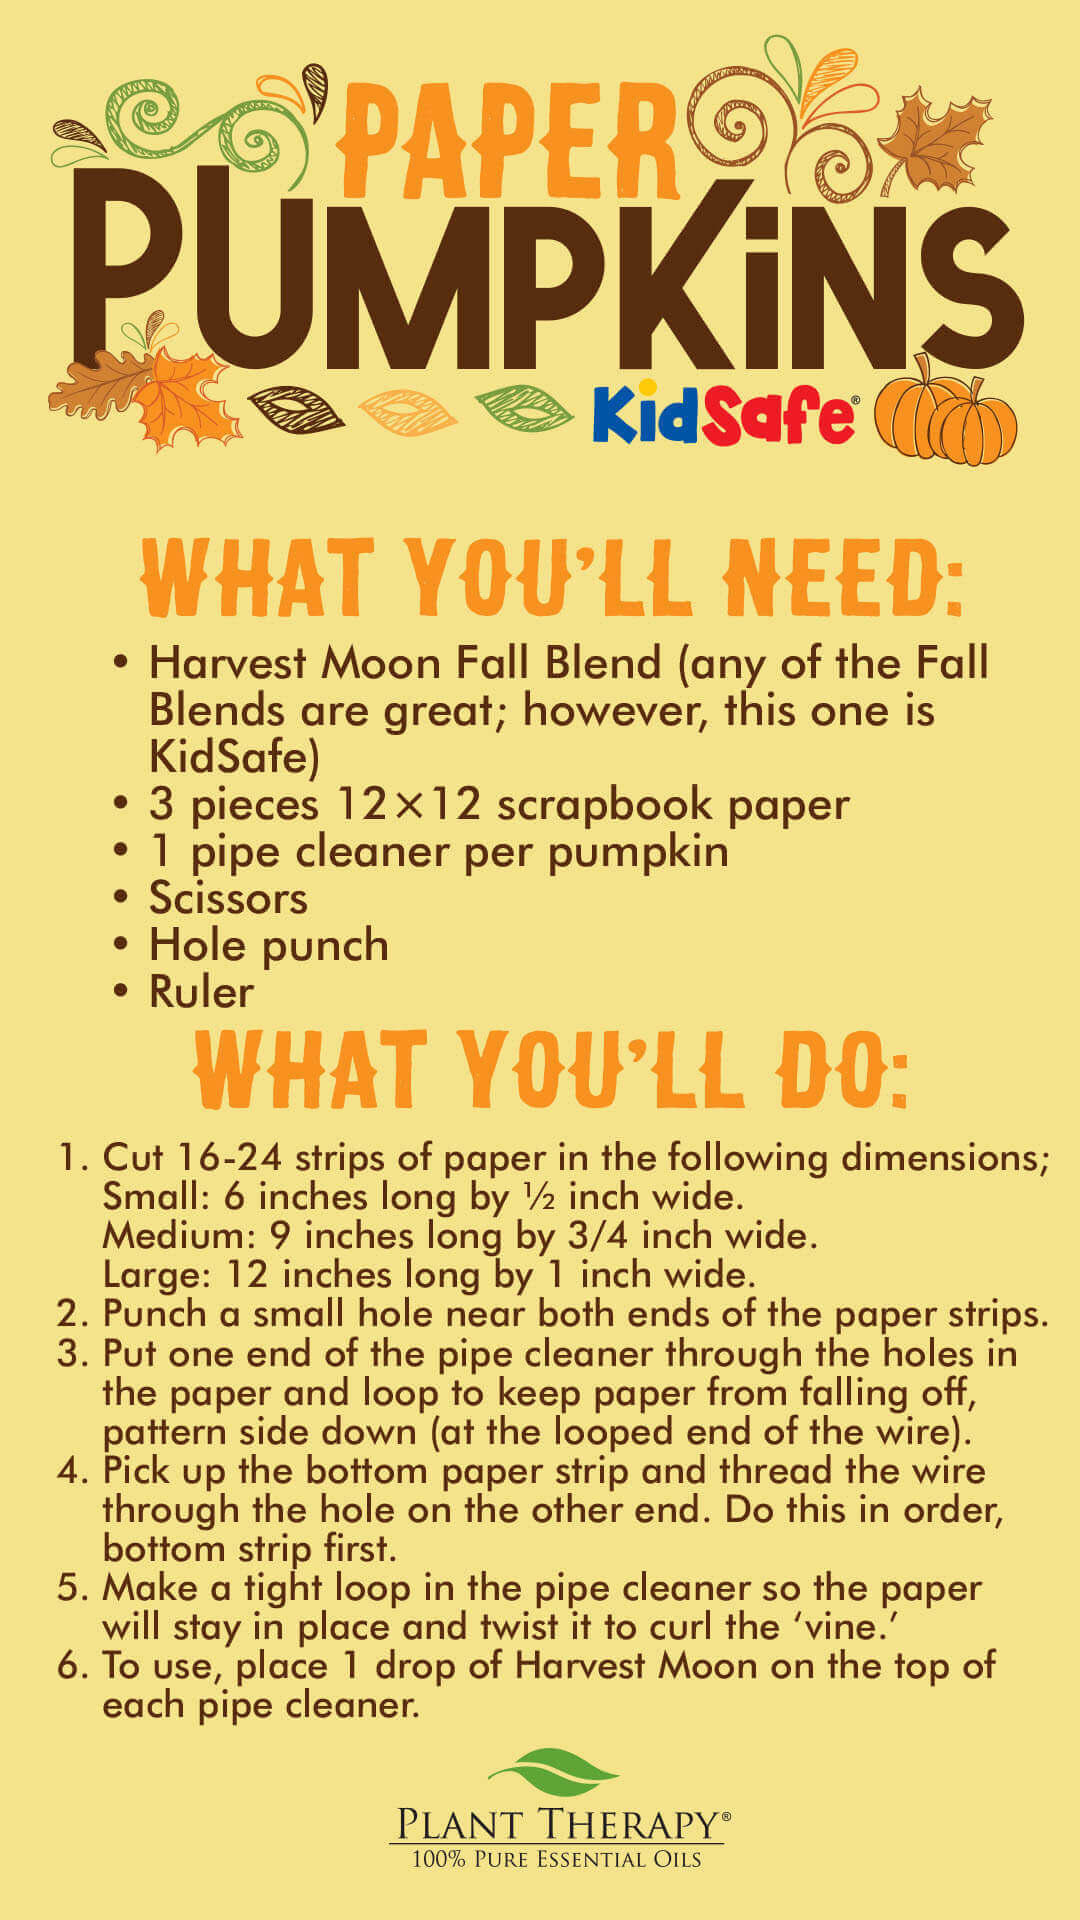 Plant Therapy Paper Pumpkins DIY